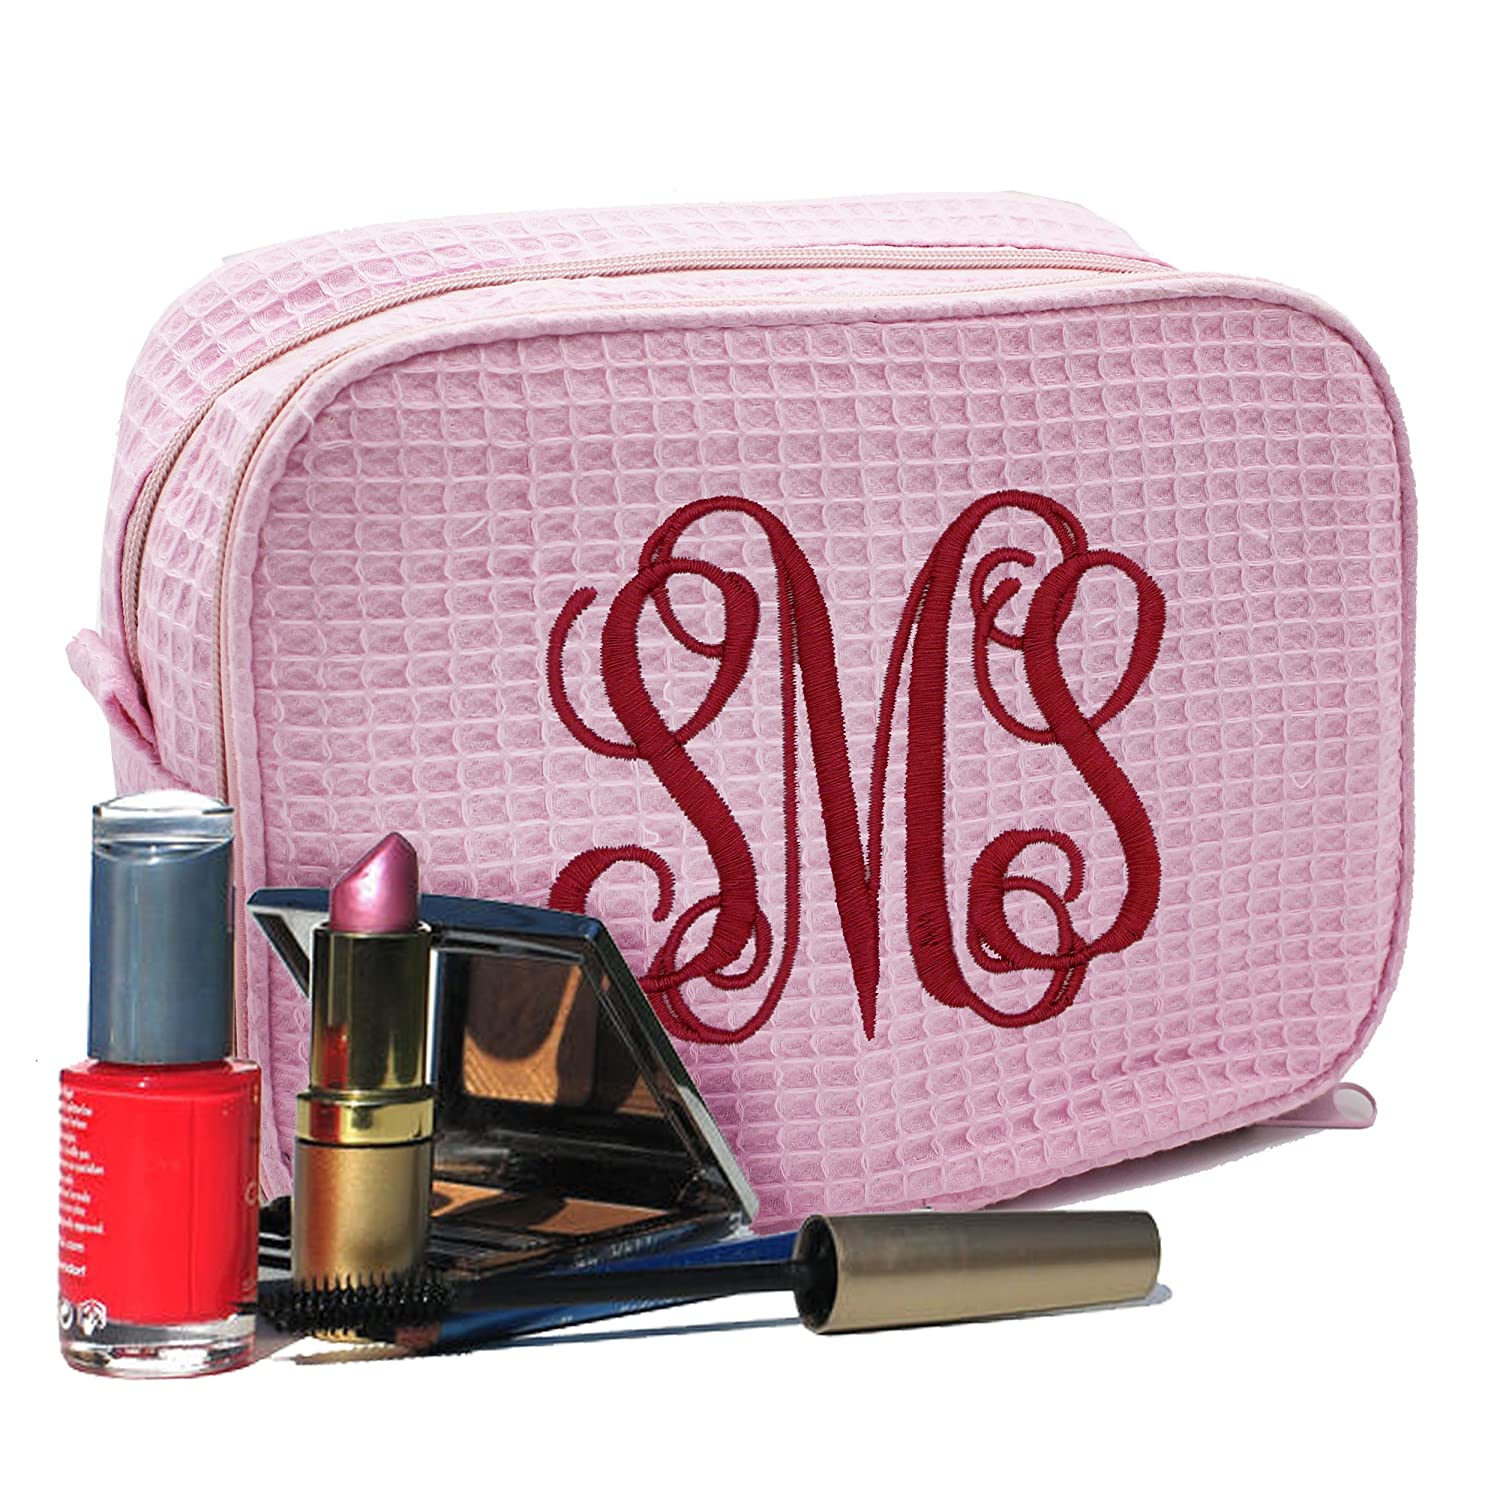 Personalized Makeup Bag - Bridesmaid Gift Make Up Cosmetic Case - Monogrammed and Embroidered for Free (Pink)